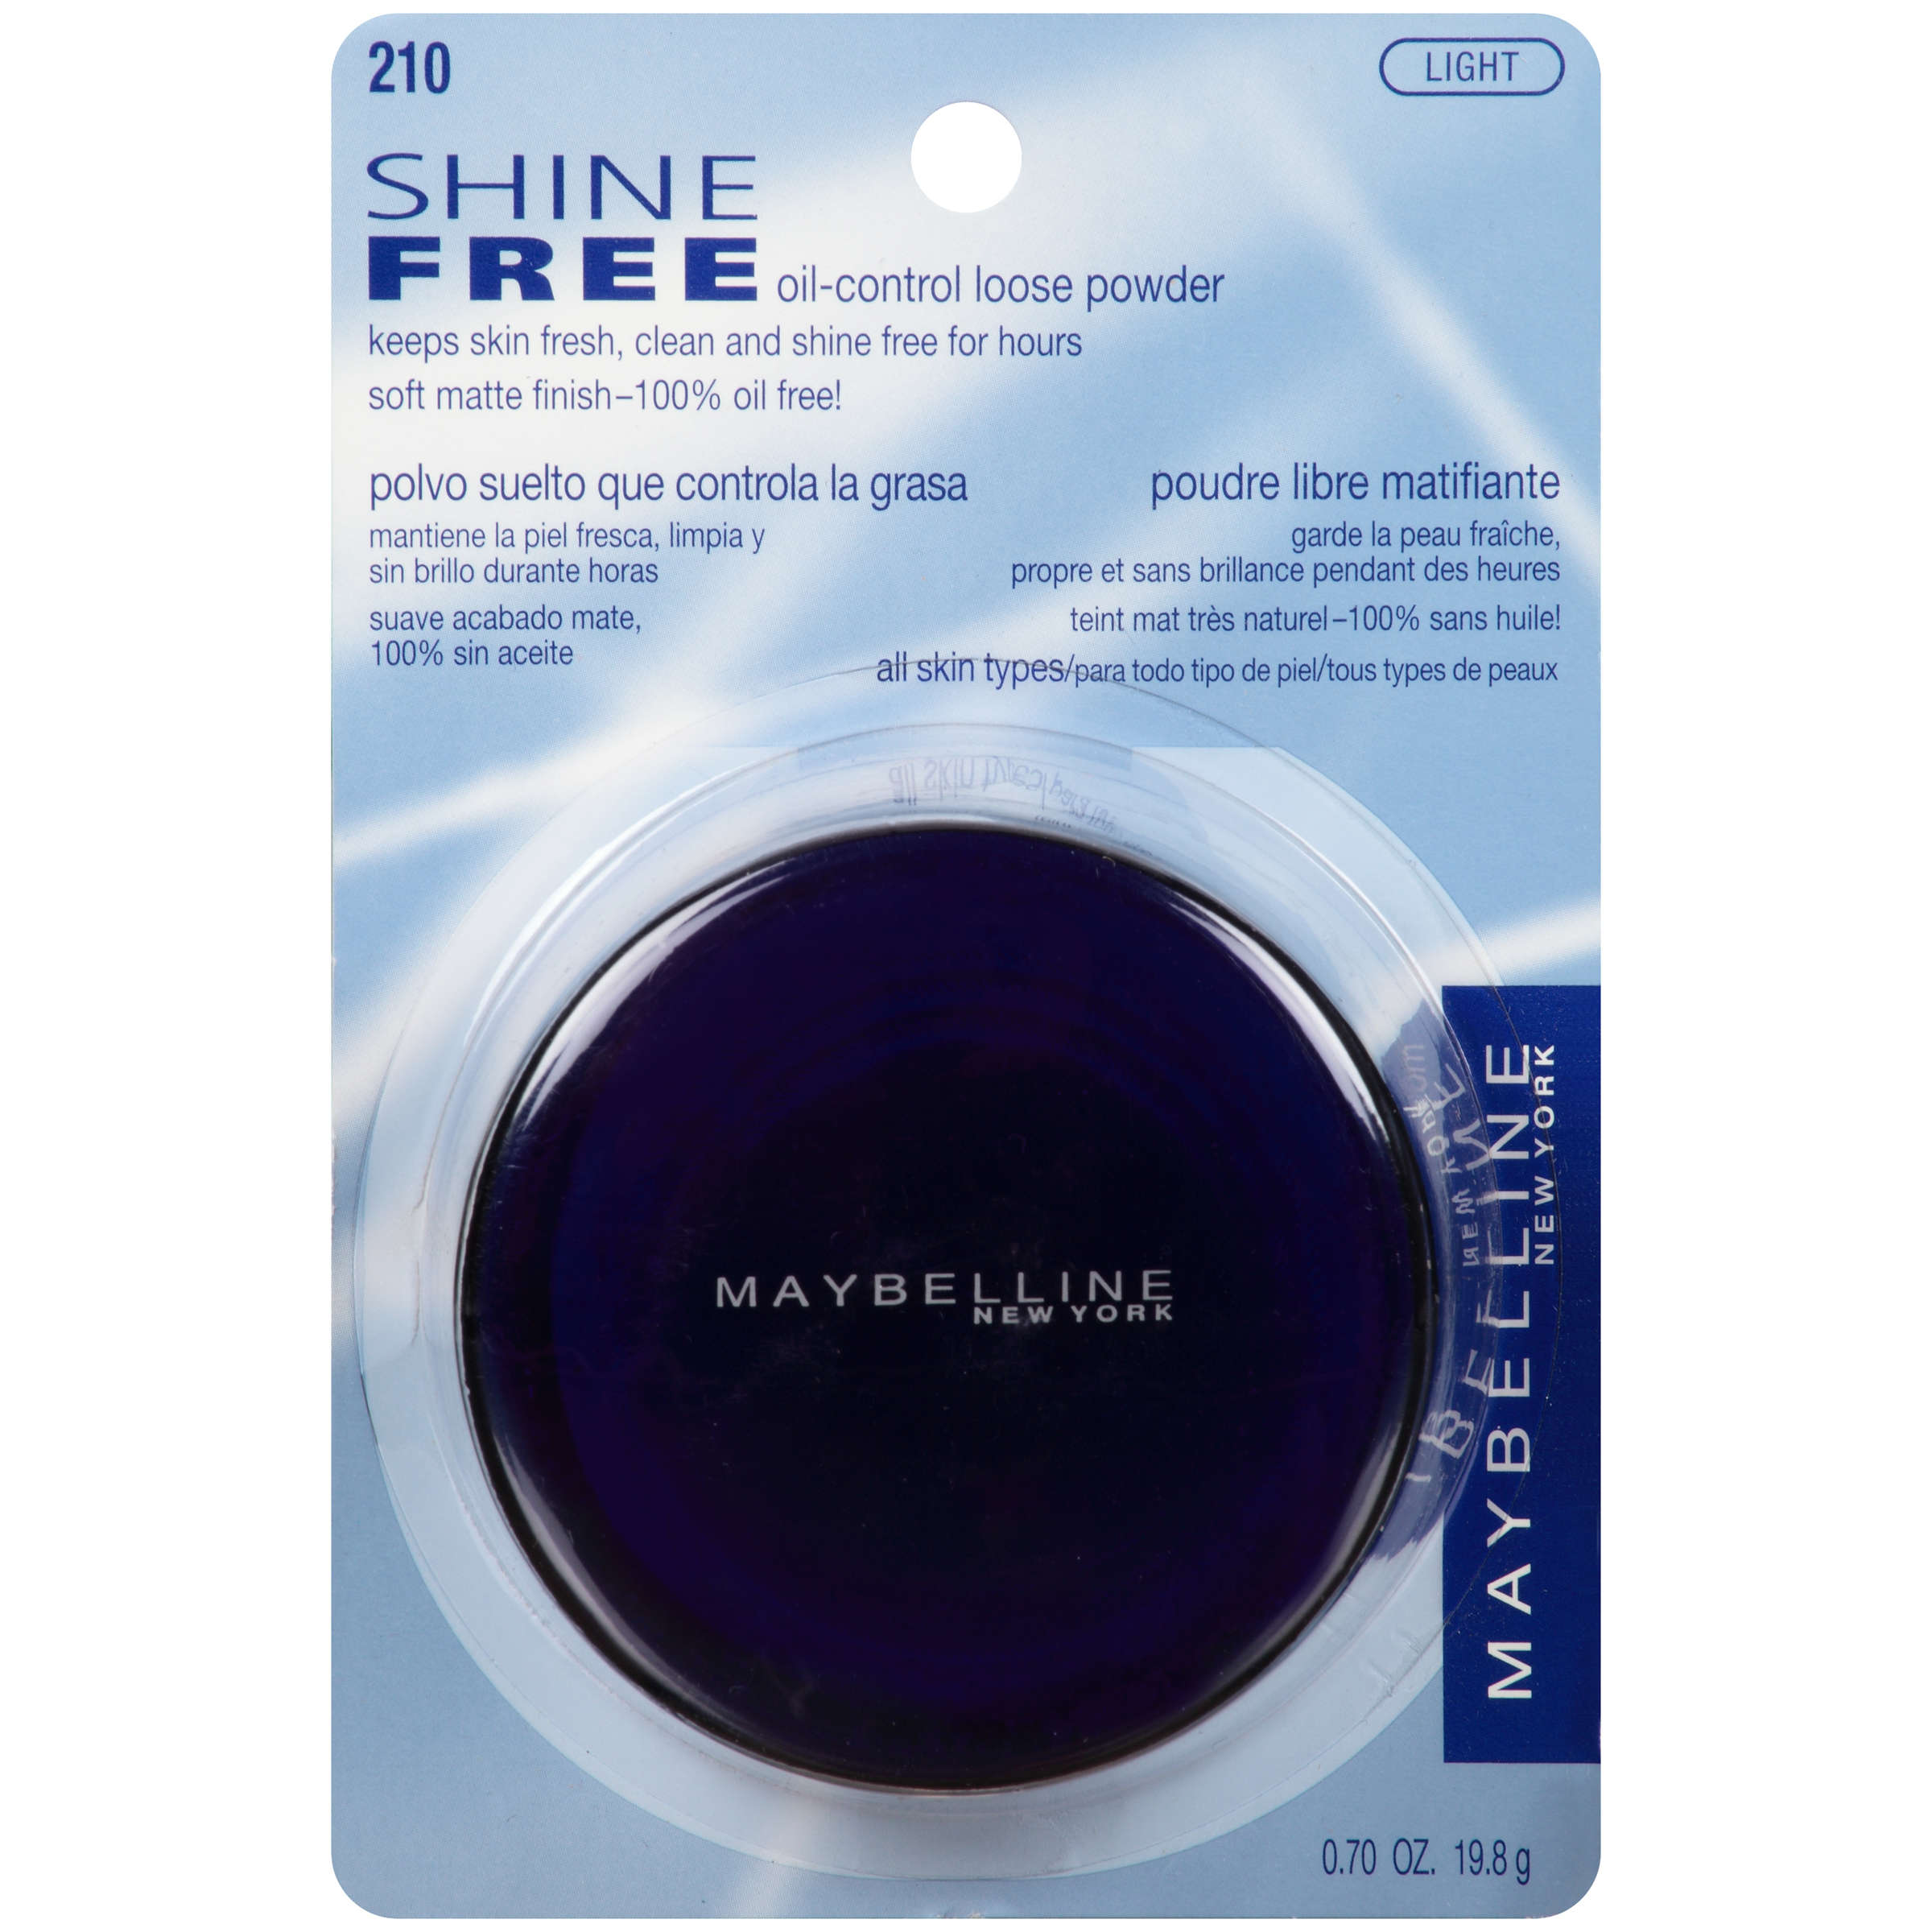 Maybelline Shine Free Oil-Control Loose Powder